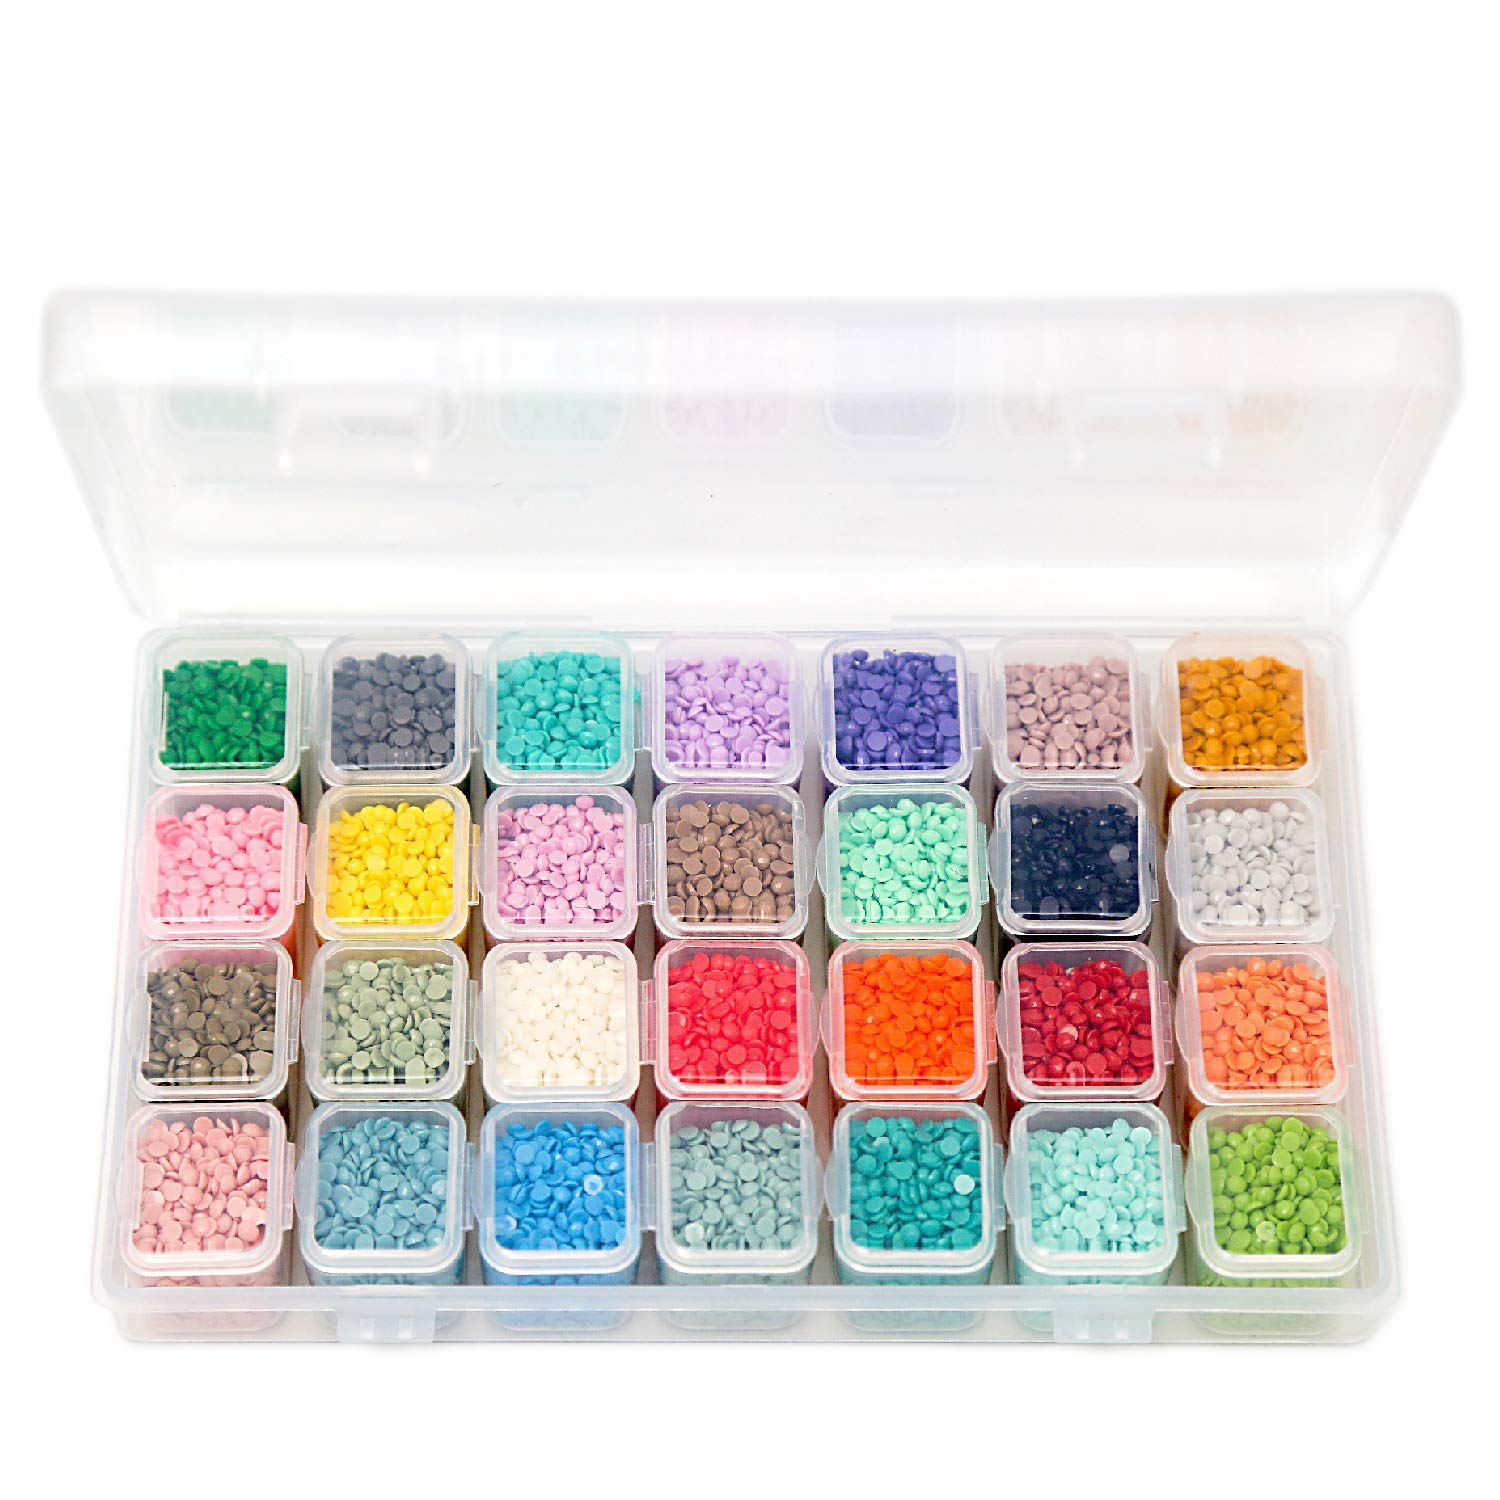 28 Colors Diamond Painting Accessories Replacement Round Diamonds with Adjustable 28 Grids Diamond Storage Boxes and 617 Pieces Marker Label for Missing Drills of 5D Diamond Painting Kits